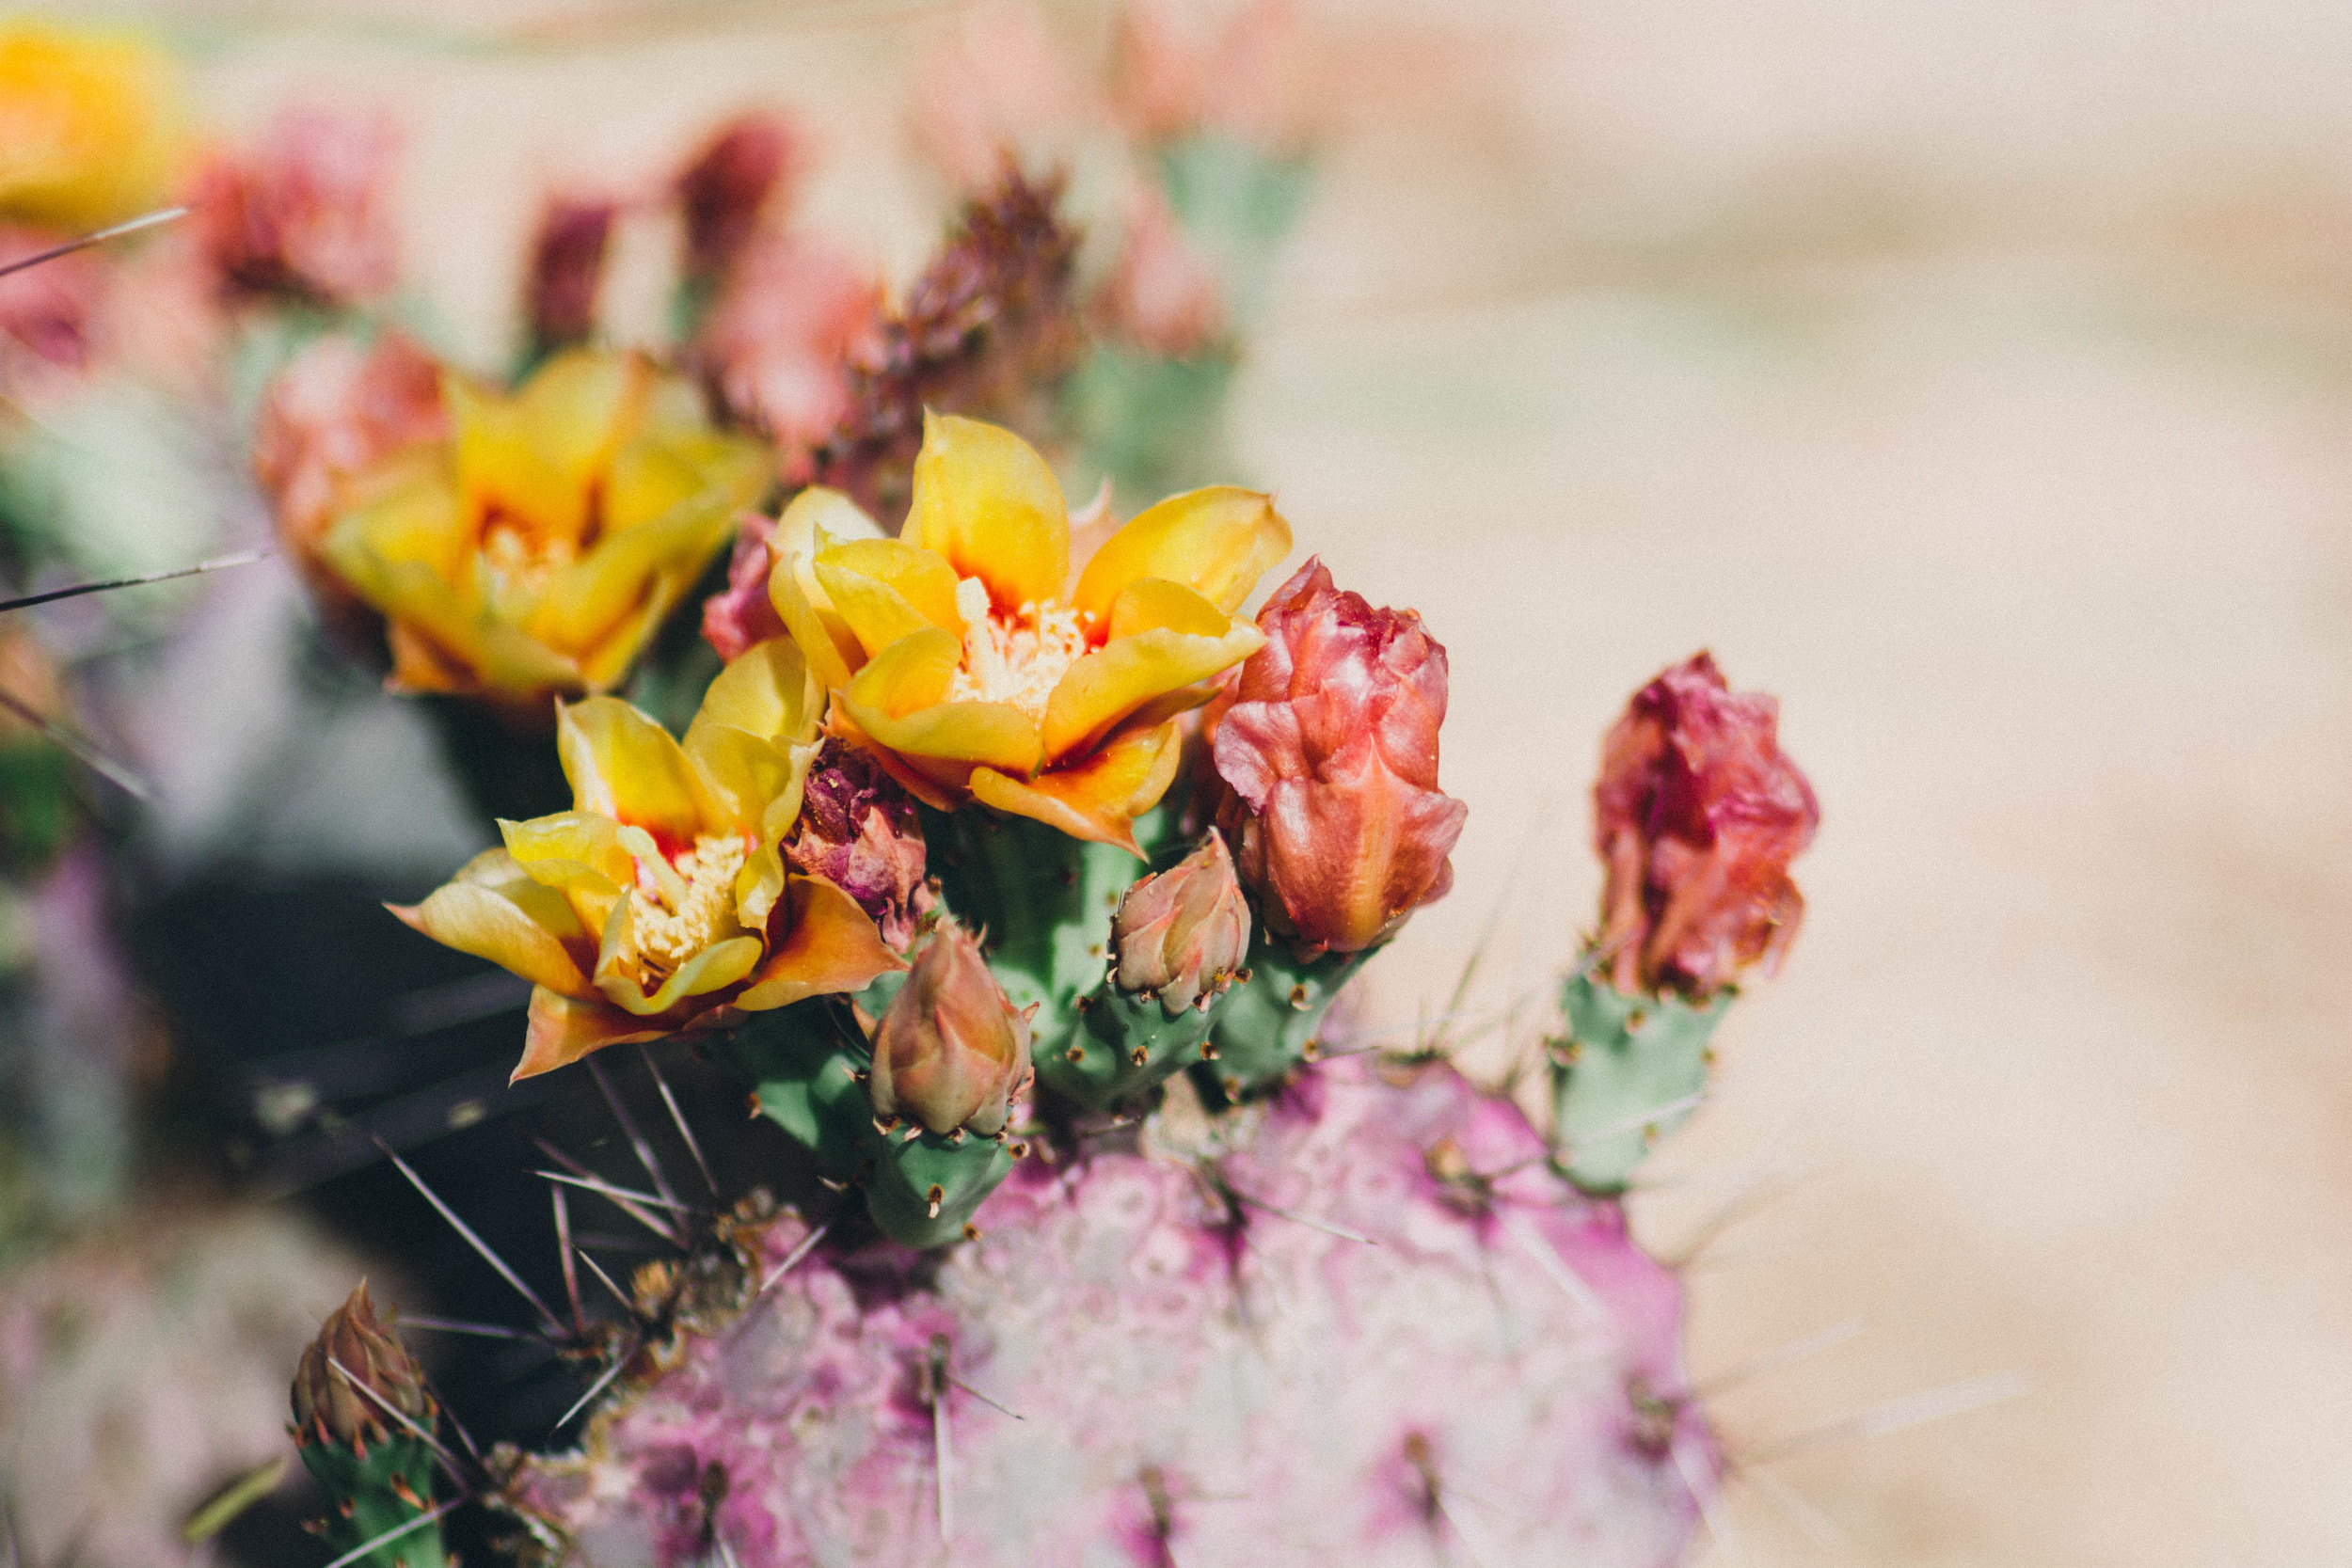 """""""  Thorns are modified leaves that allow cacti to survive in arid conditions. And just like those thorns, sometimes humans develop survival mechanisms to protect themselves from extreme circumstances. Some people are like cacti. Beautiful, delicate, resilient.  """""""